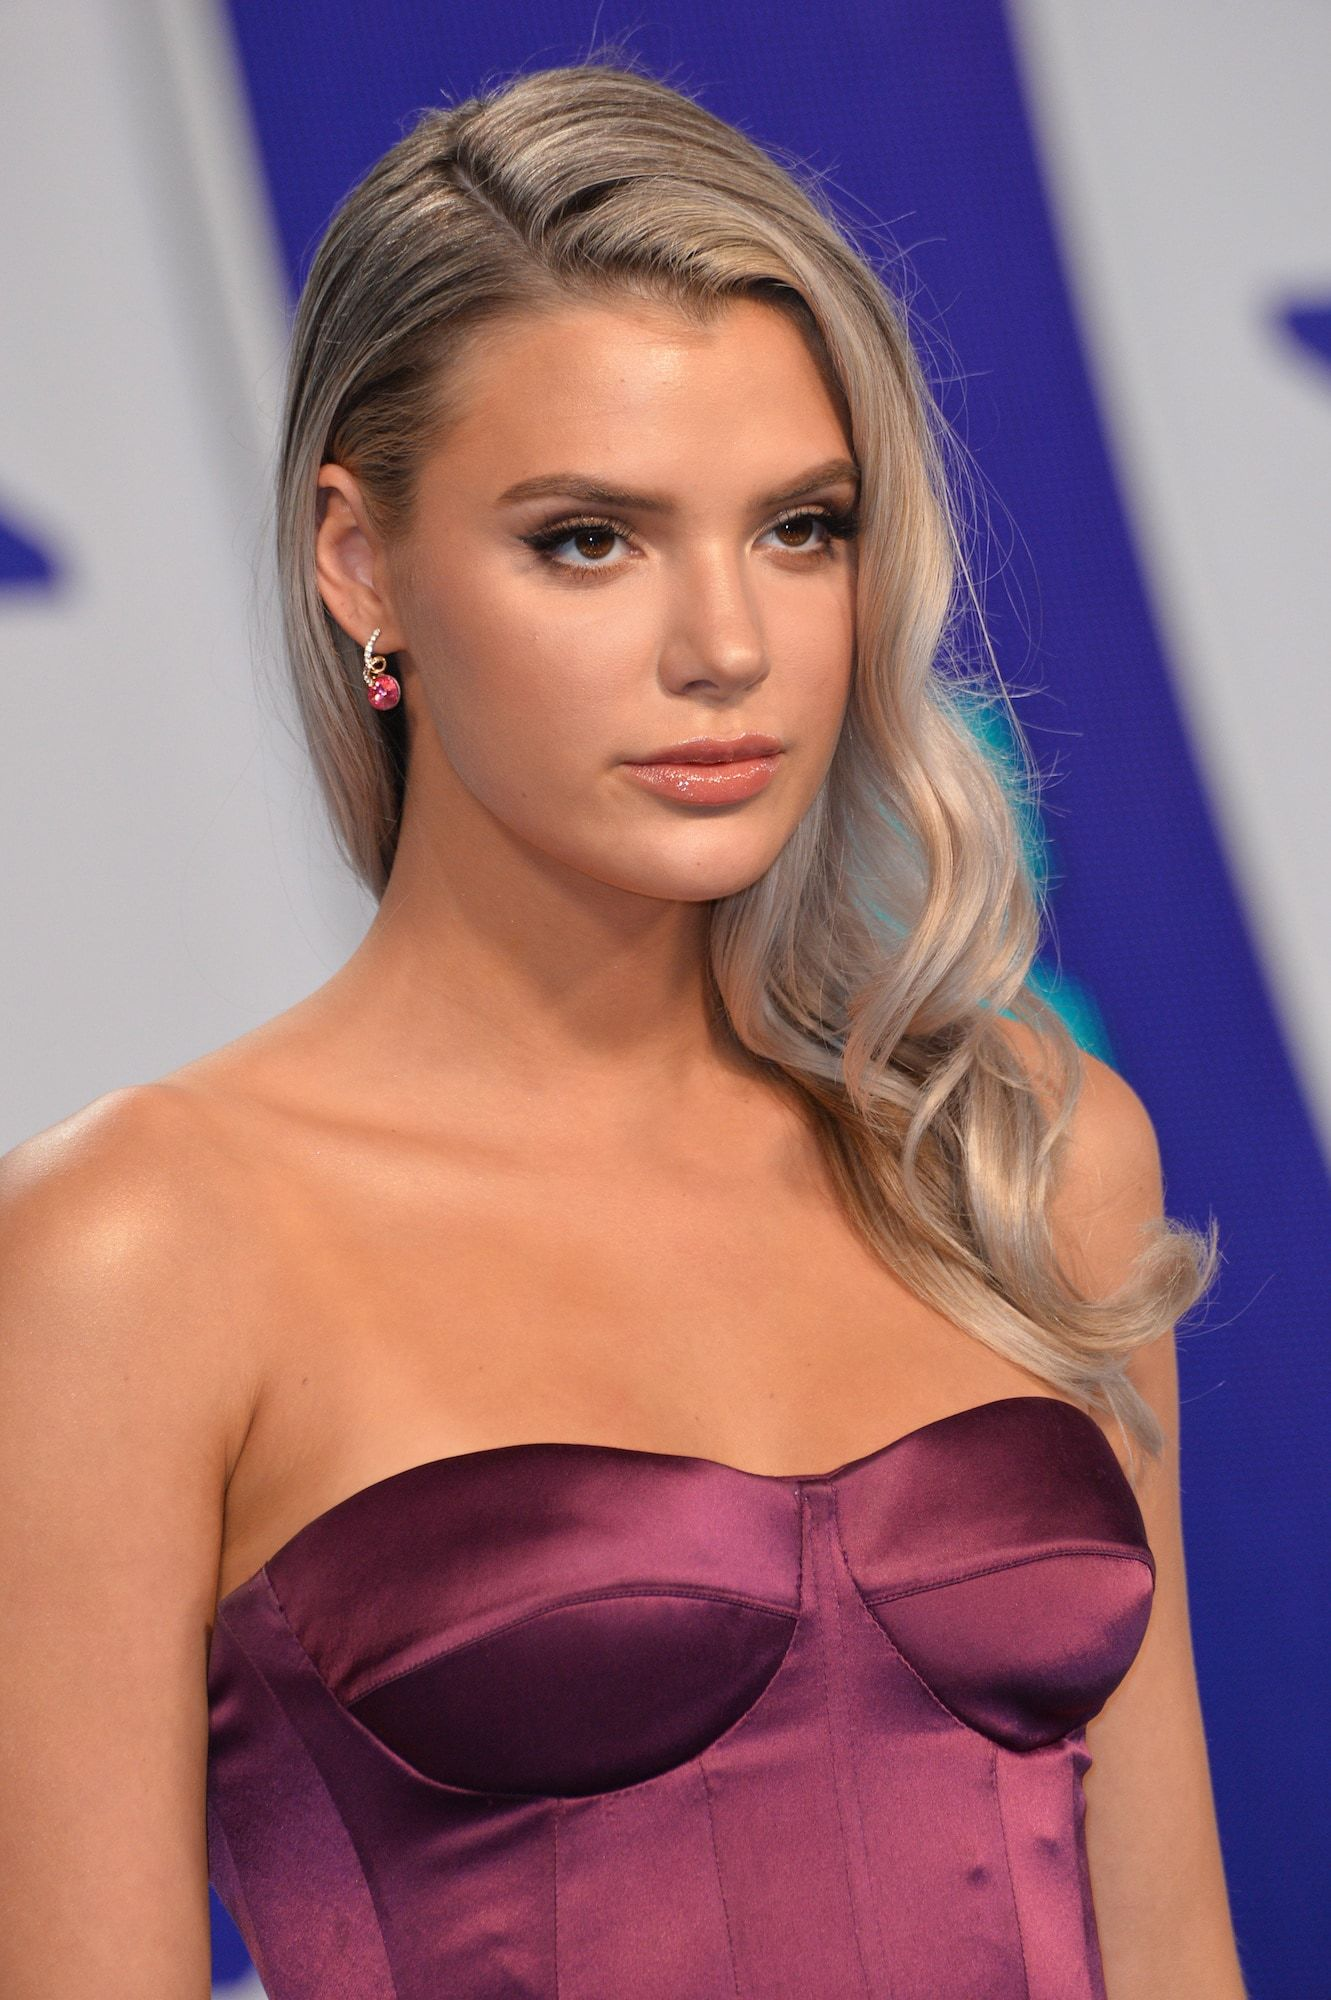 Alissa violet warna rambut medium ash blonde